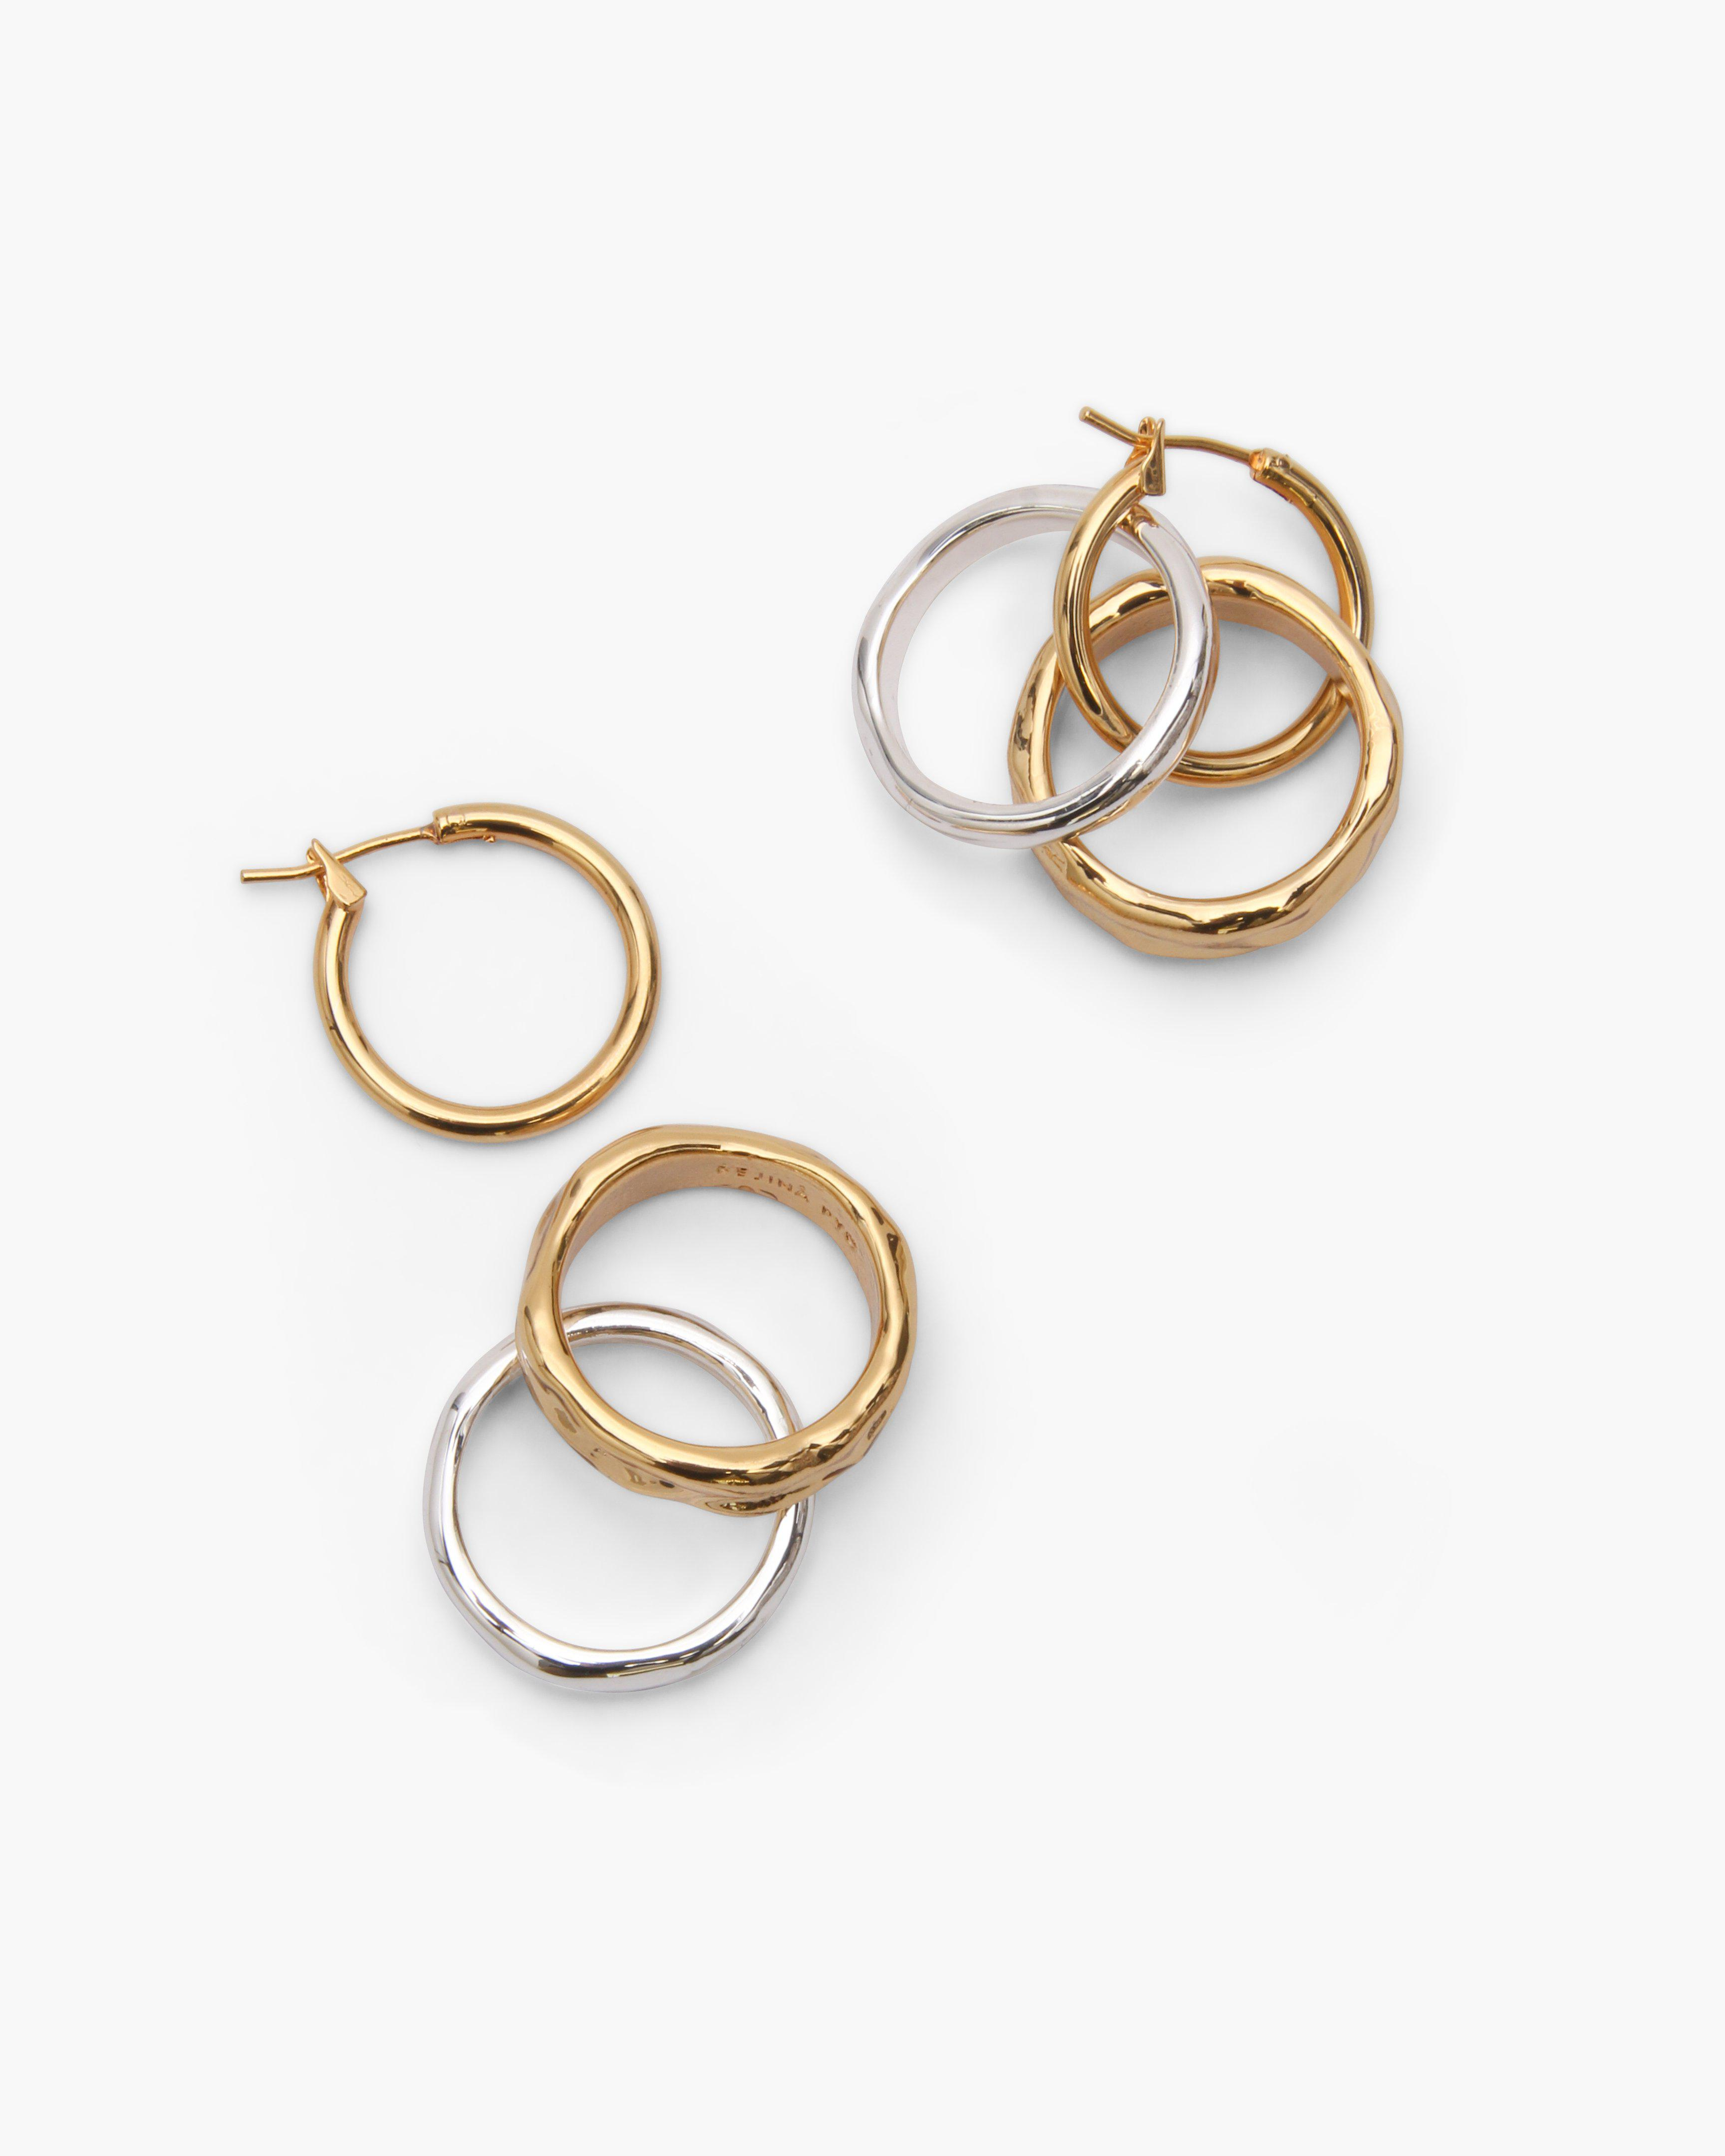 Double Ring Hoops Gold Plated 18k + Silver Mix